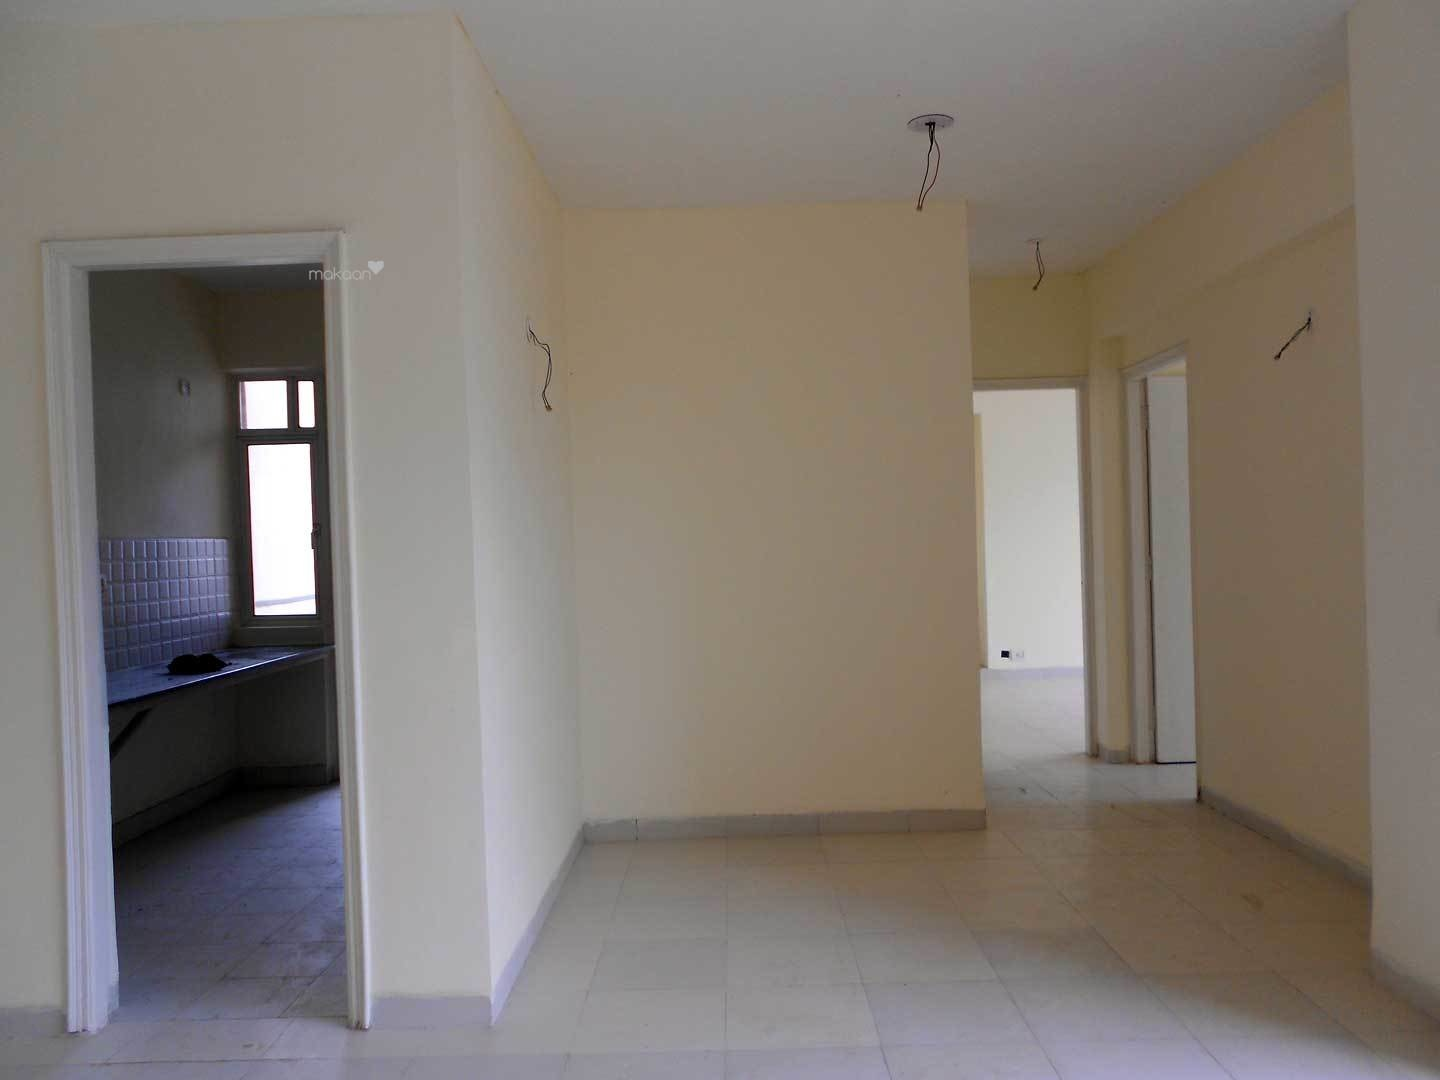 Superior 2 BHK Unfurnished Flat And Apartment For Rent In Shiv Park 1 Apartments  Sector 87: